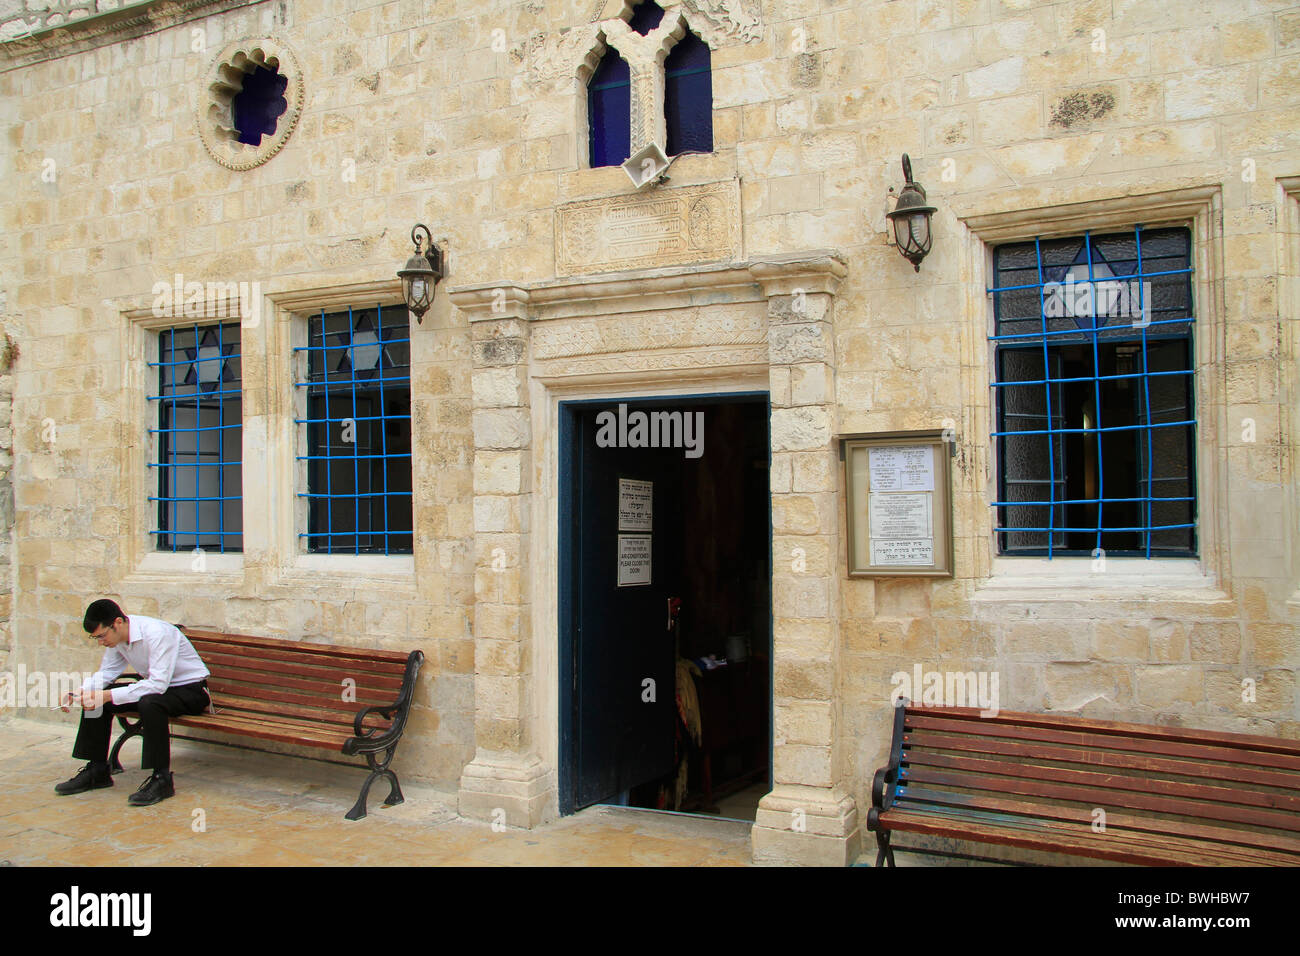 Israel, Upper Galilee, Ha'ari Synagogue in Safed - Stock Image